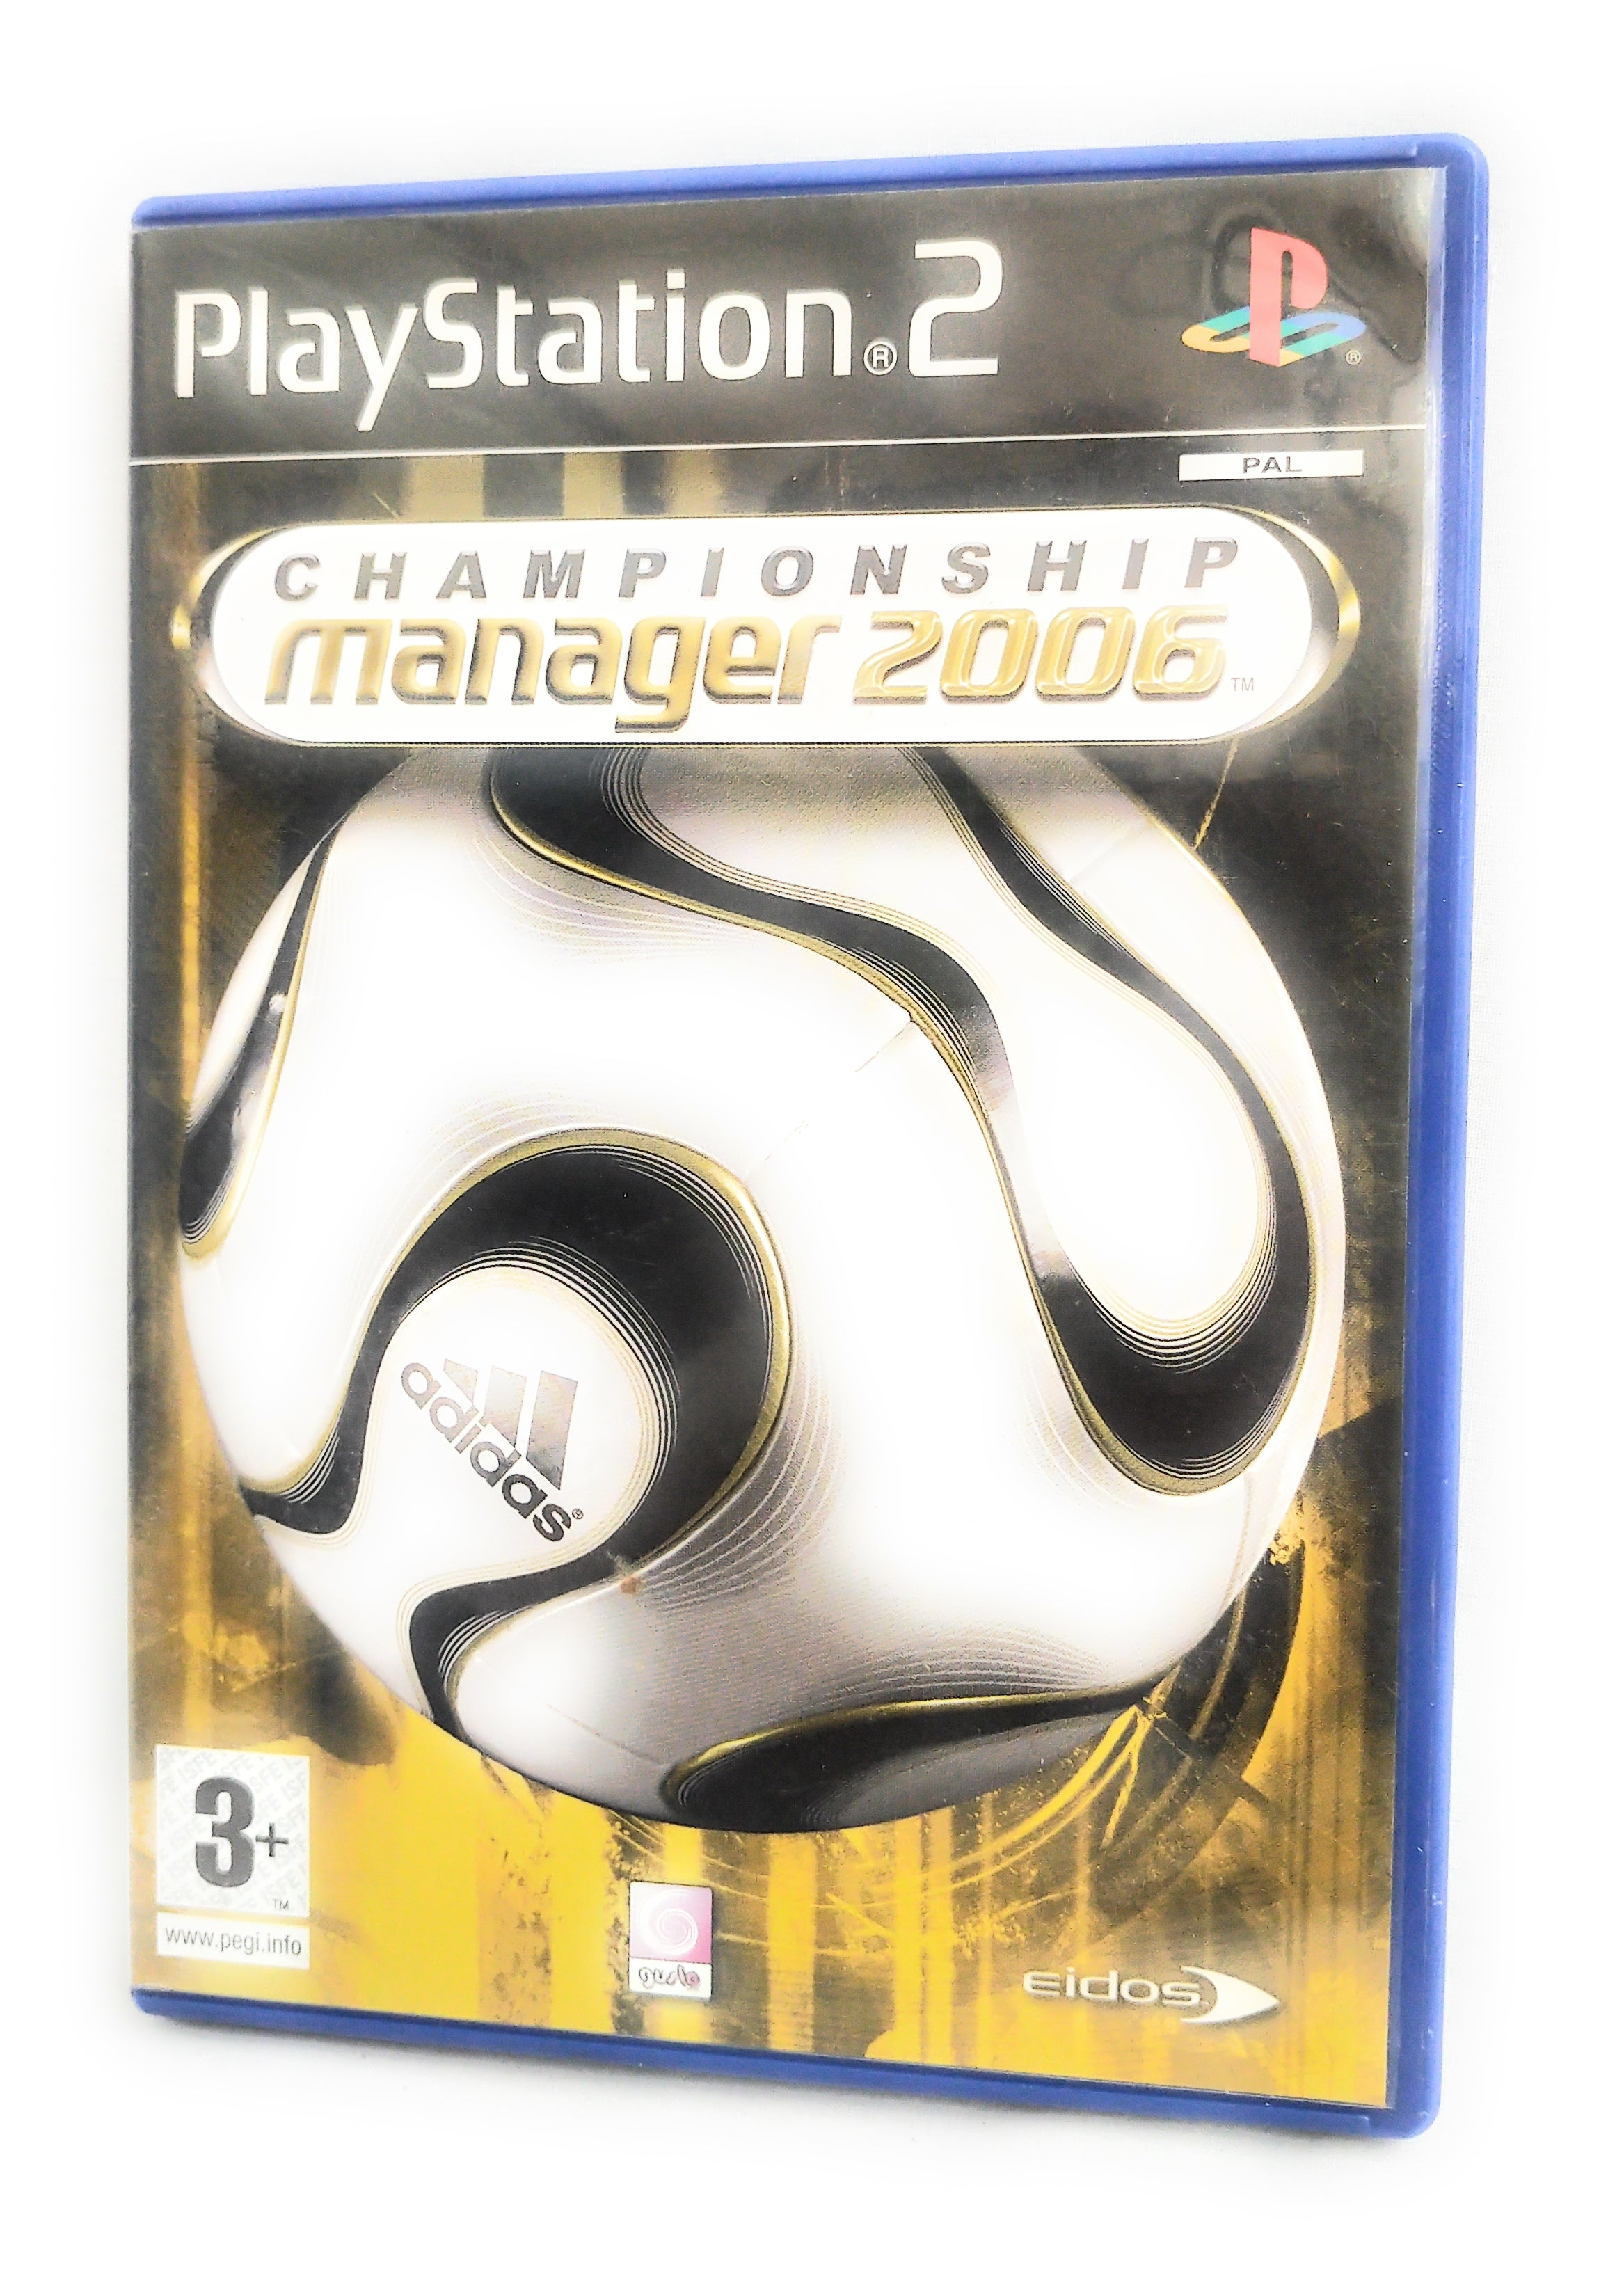 Championship Manager 2006 Playstation 2 PS2